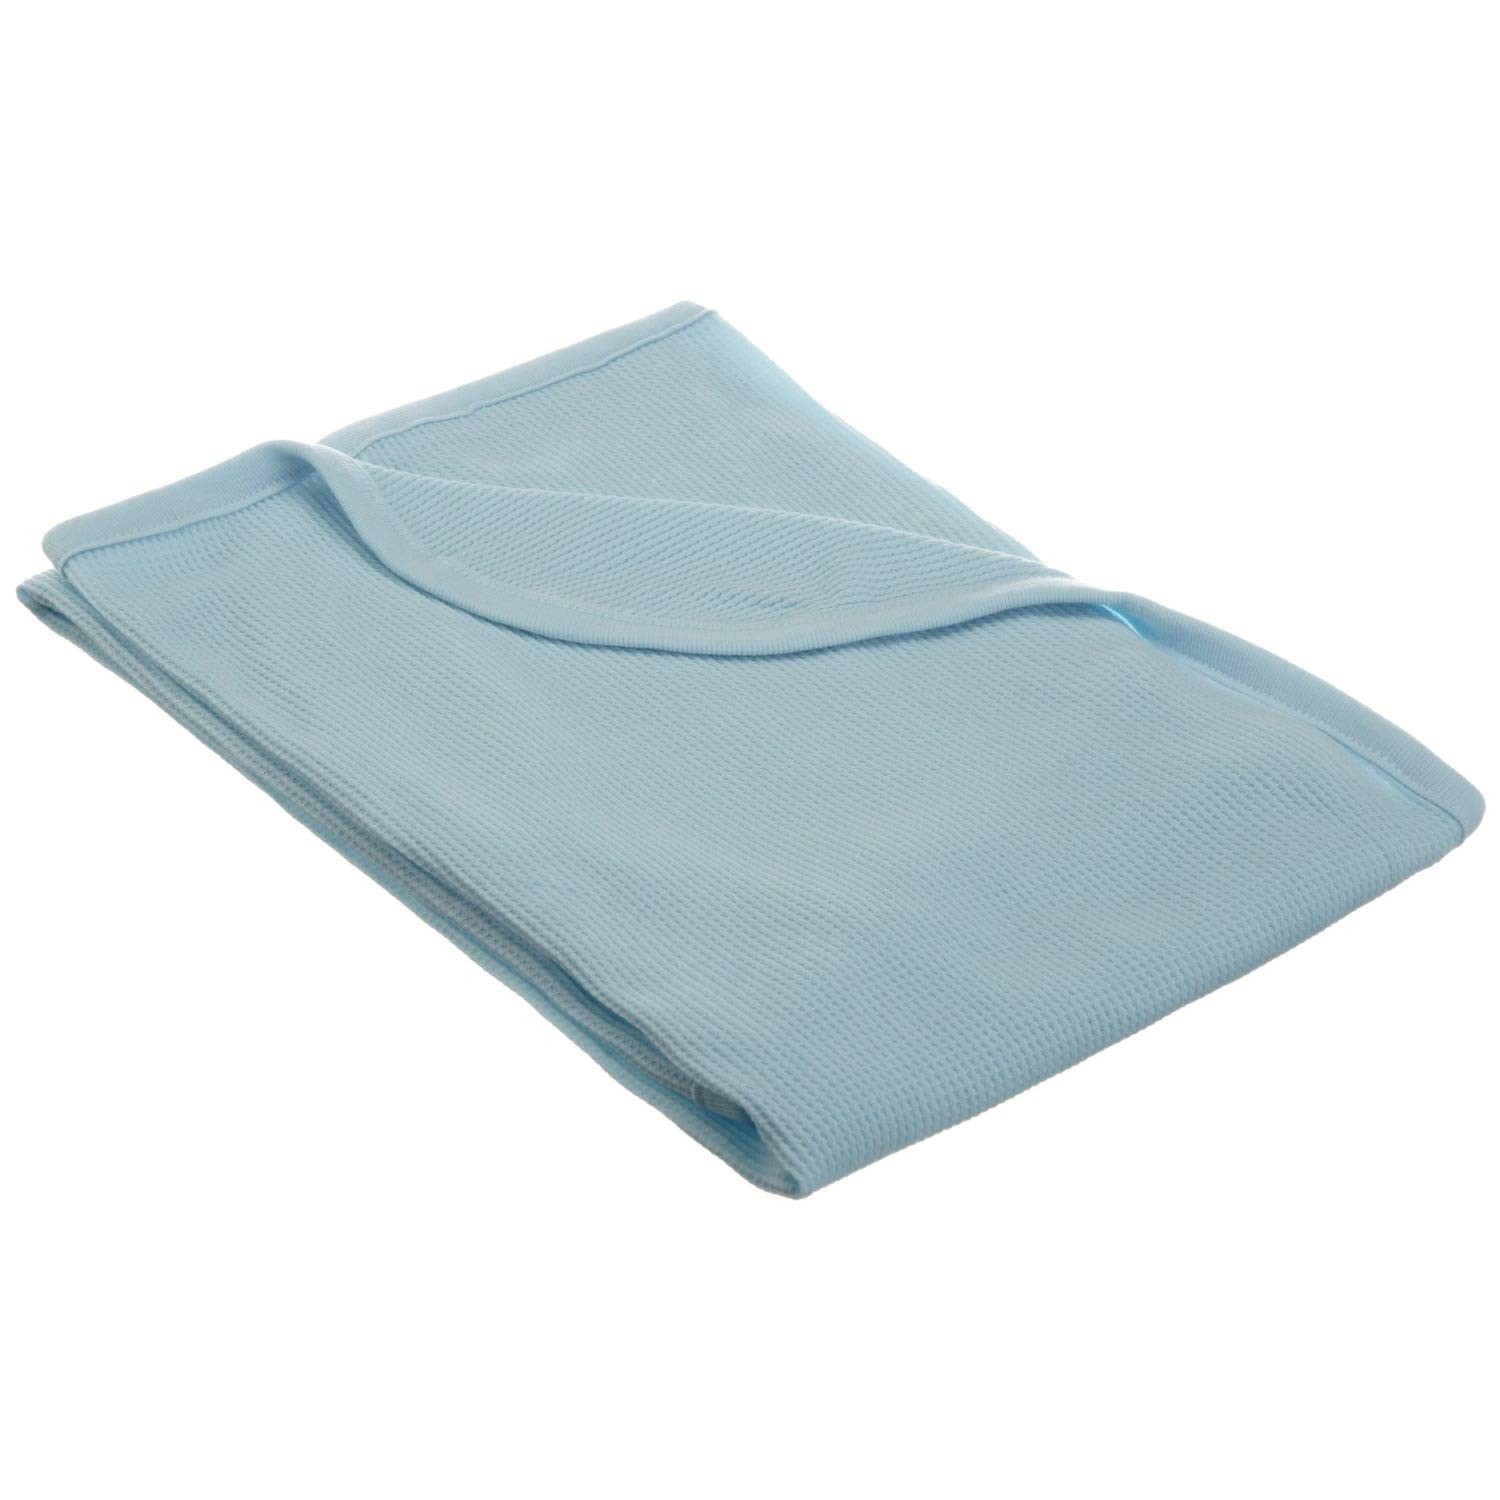 TL Care 100% Natural Cotton Swaddle/Thermal Blanket, Blue, Soft Breathable, for Boys and Girls